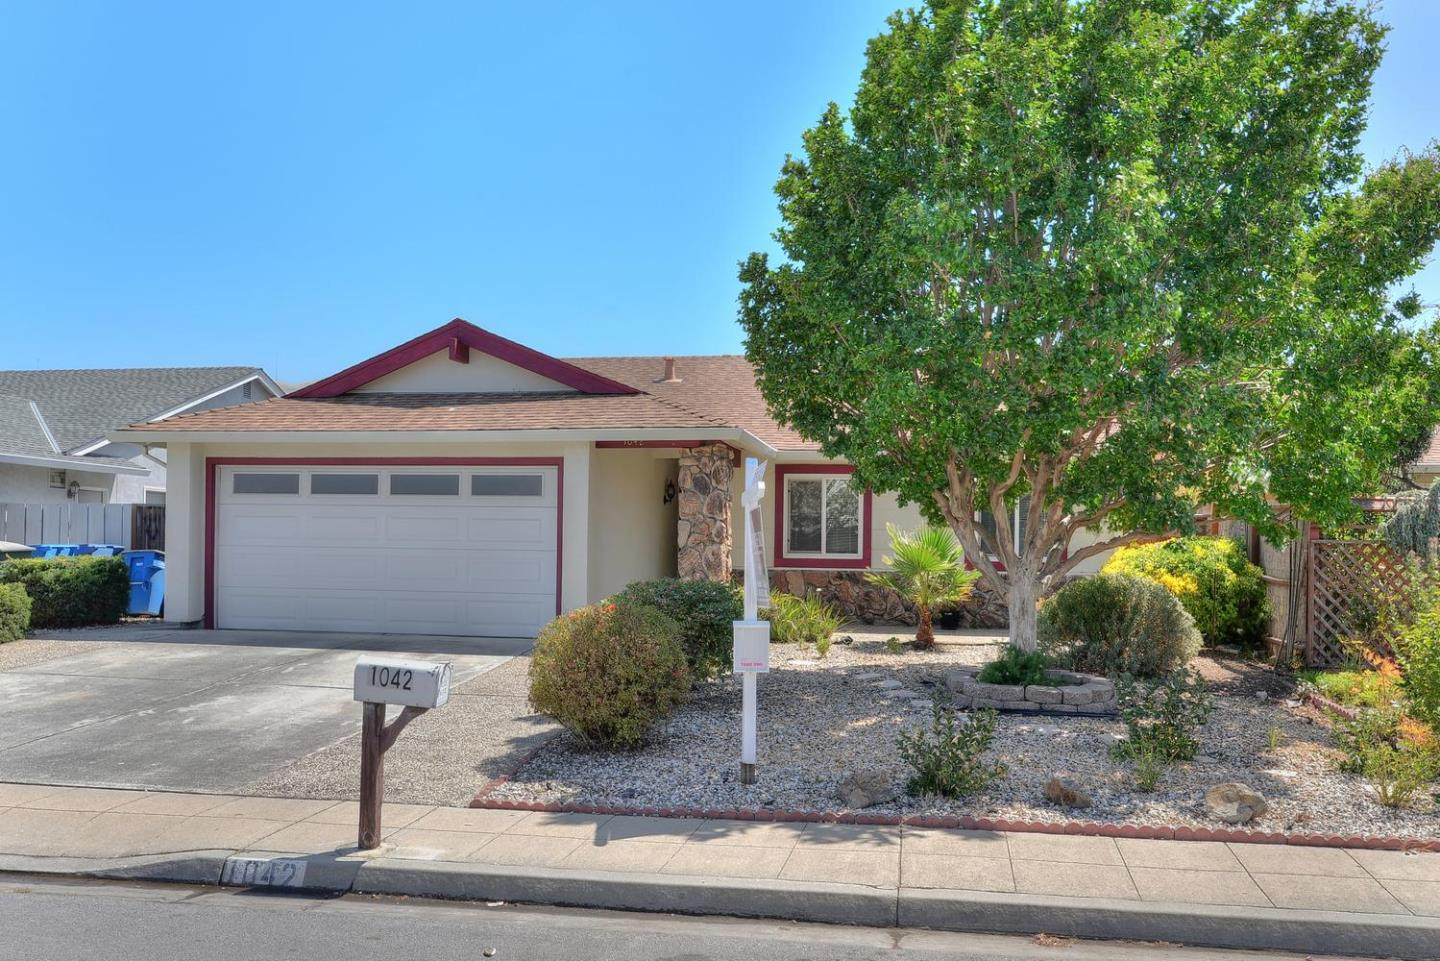 Additional photo for property listing at 1042 PESCADERO Street  Milpitas, 加利福尼亞州 95035 美國